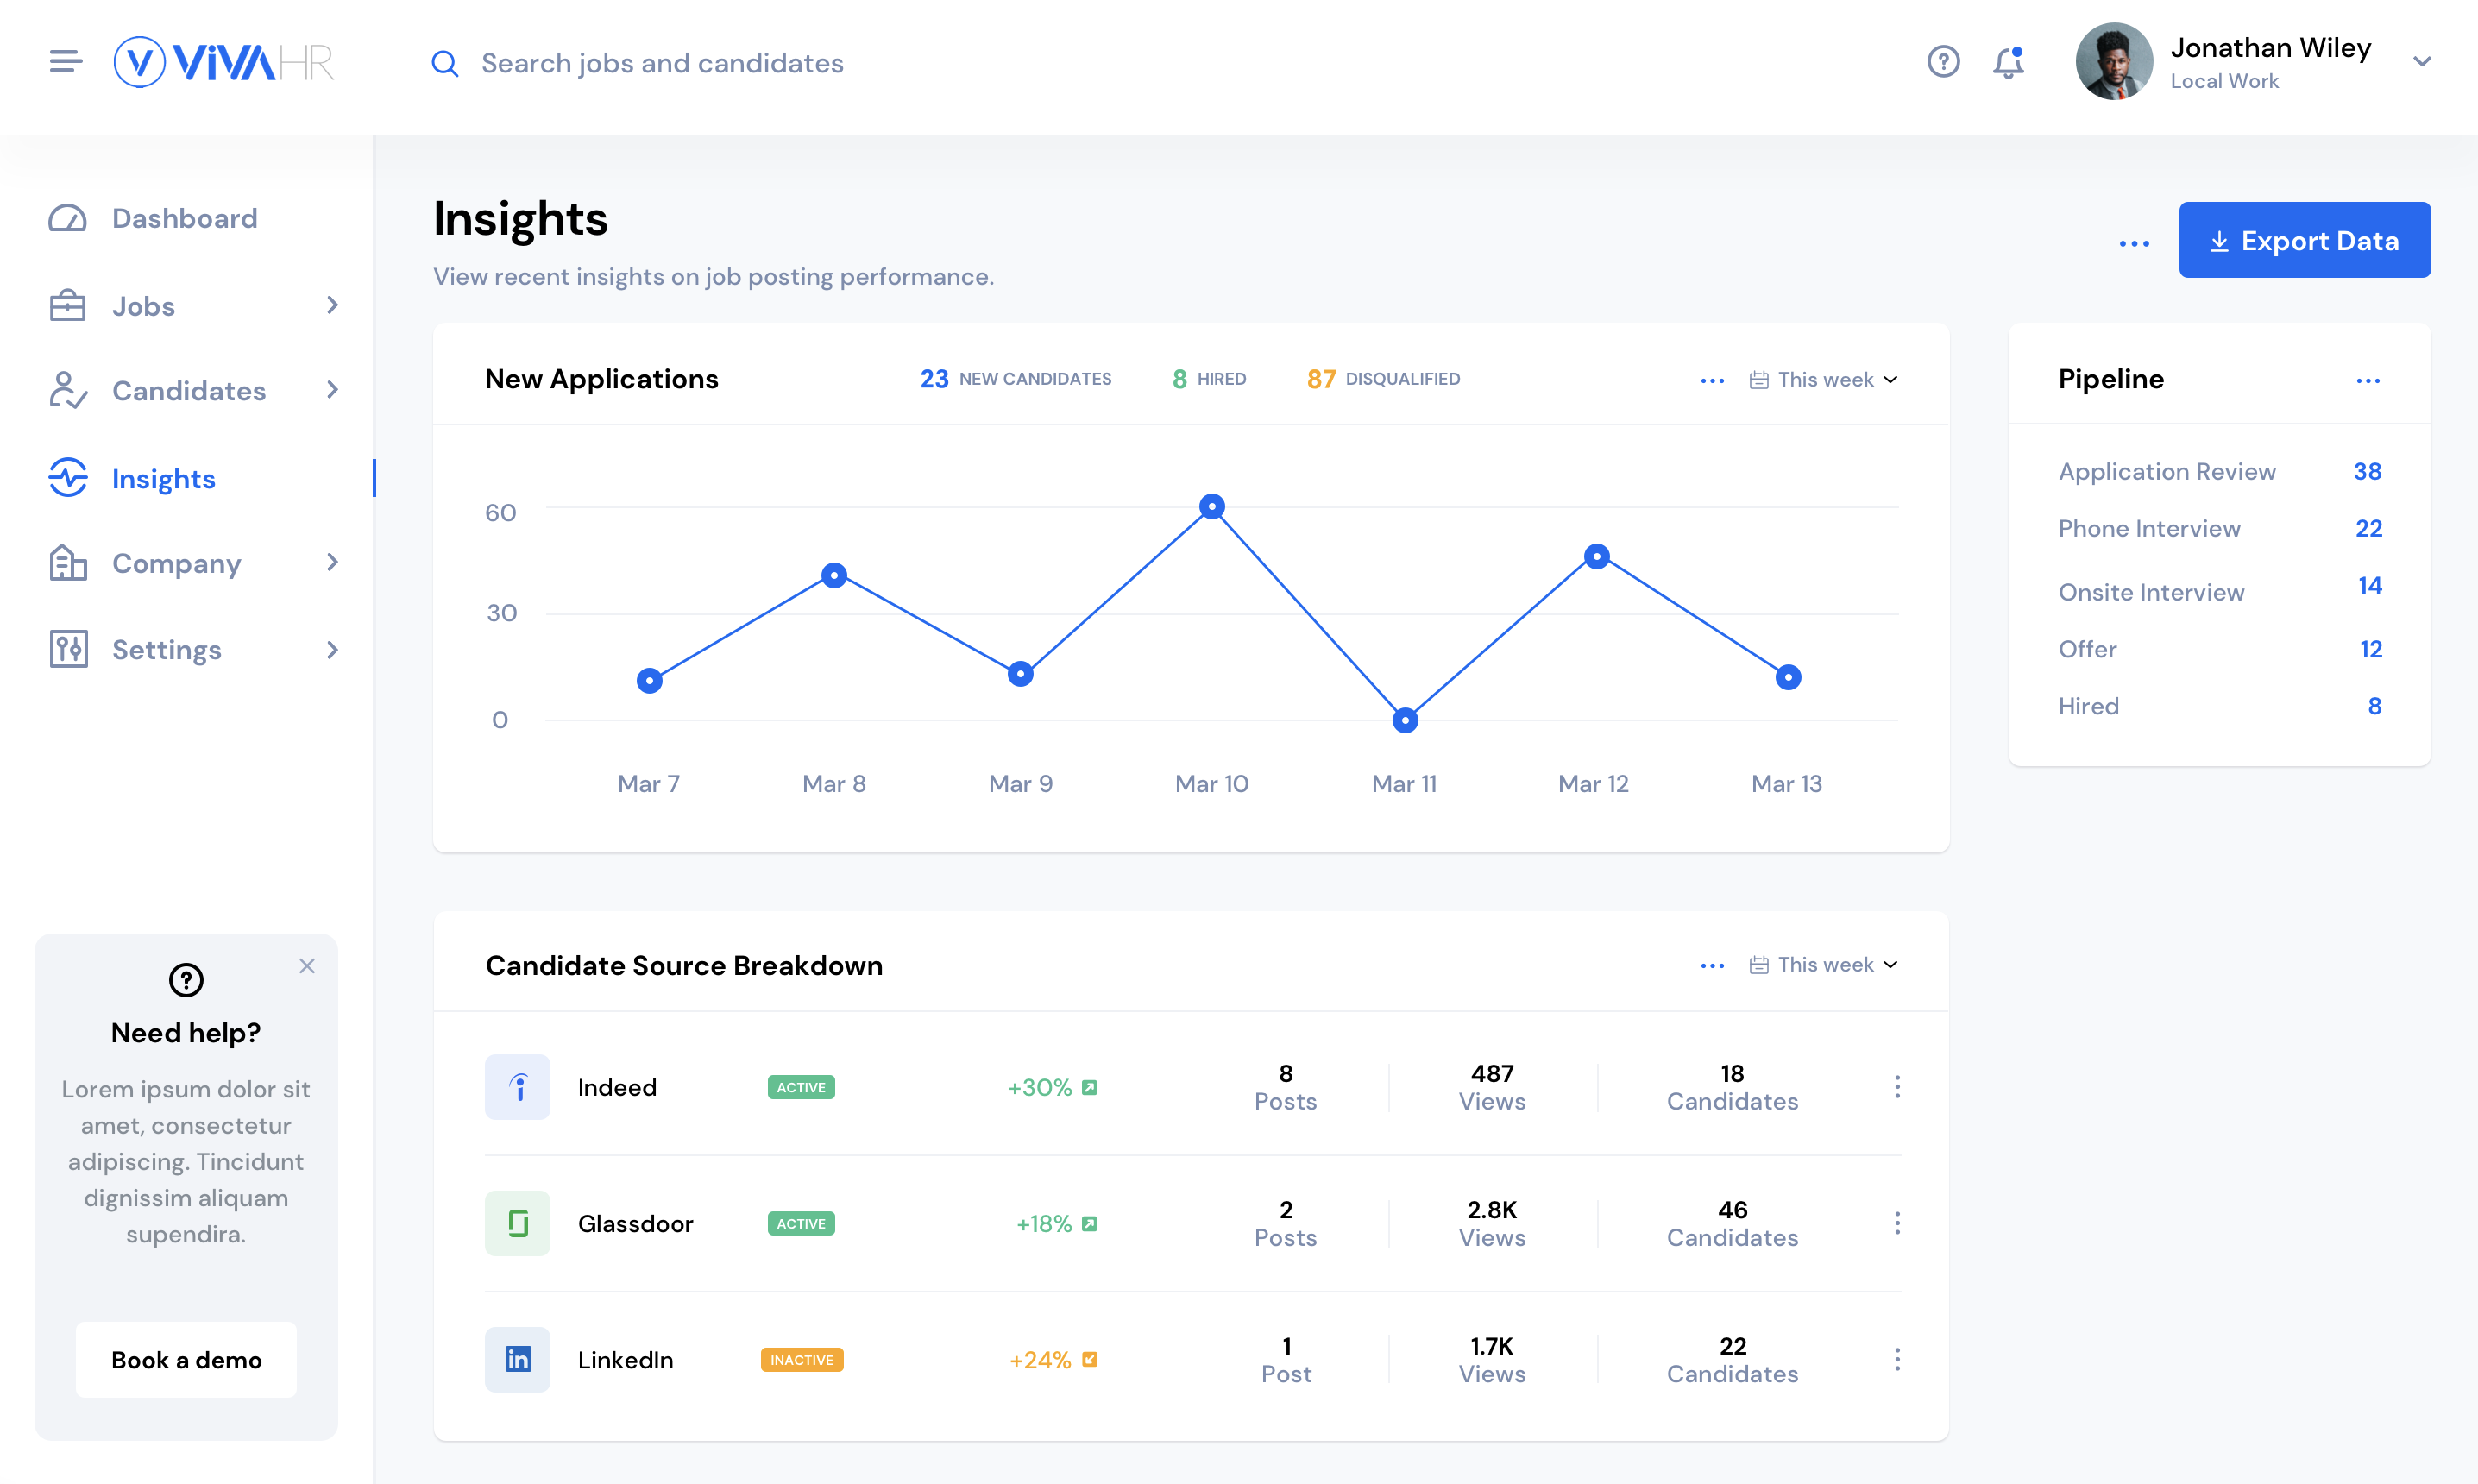 Customize your reports and insights to get a clear view on your hiring progress.